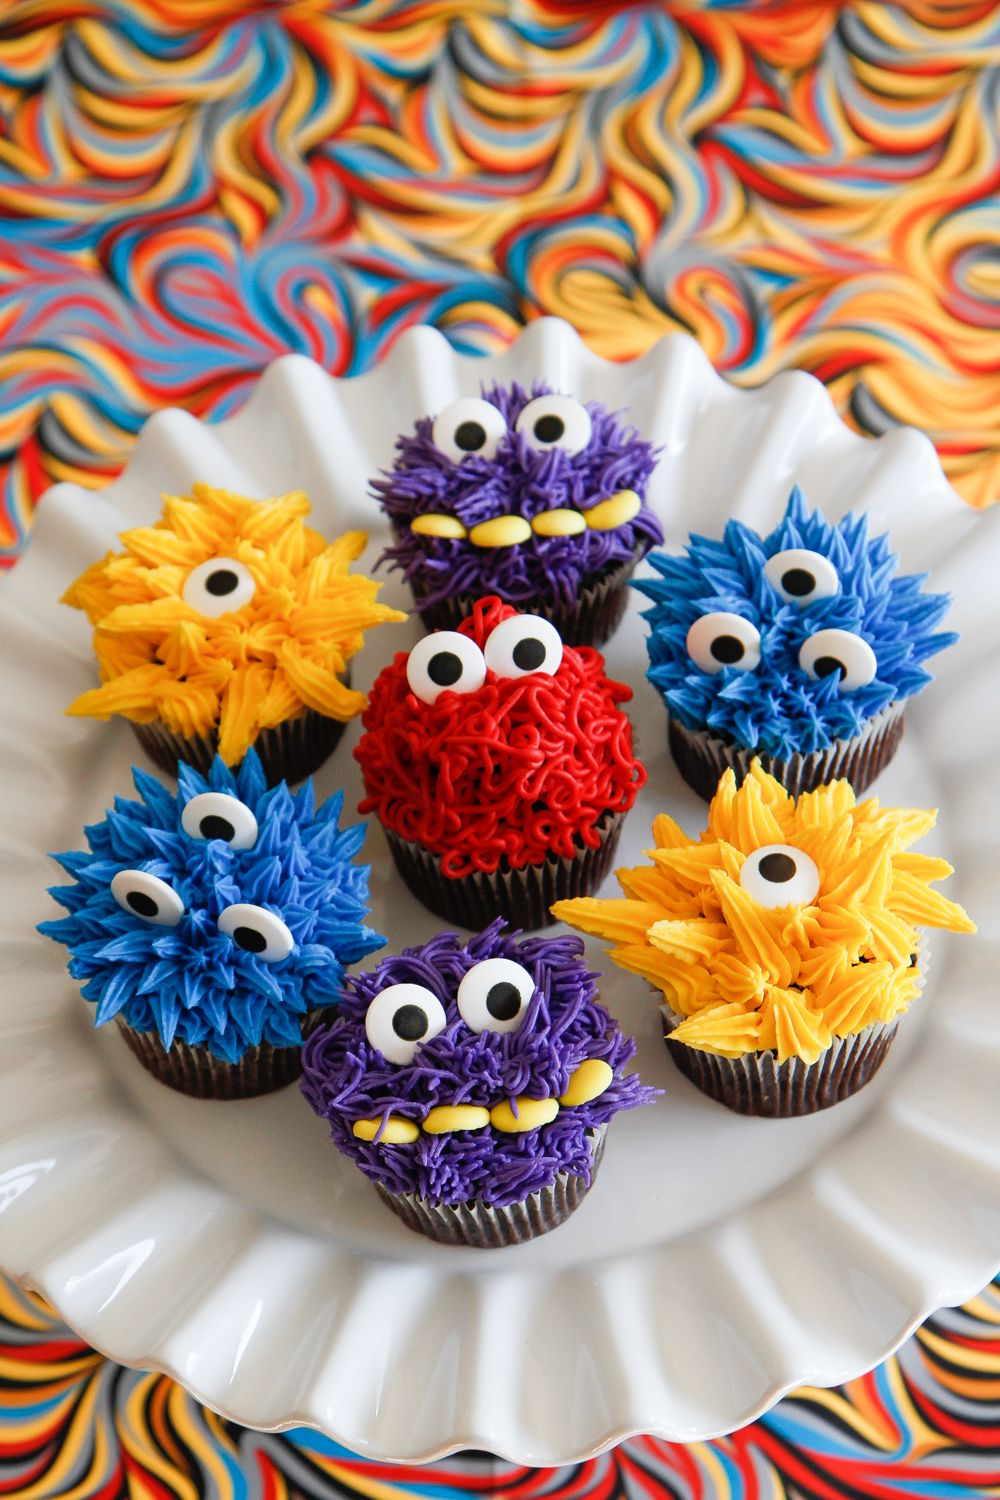 Some interesting kids birthday cake ideas different types of kids - Monster Iffic Cupcakes Cute Little Monster Cupcakes For A Little Boy S Birthday Chocolate